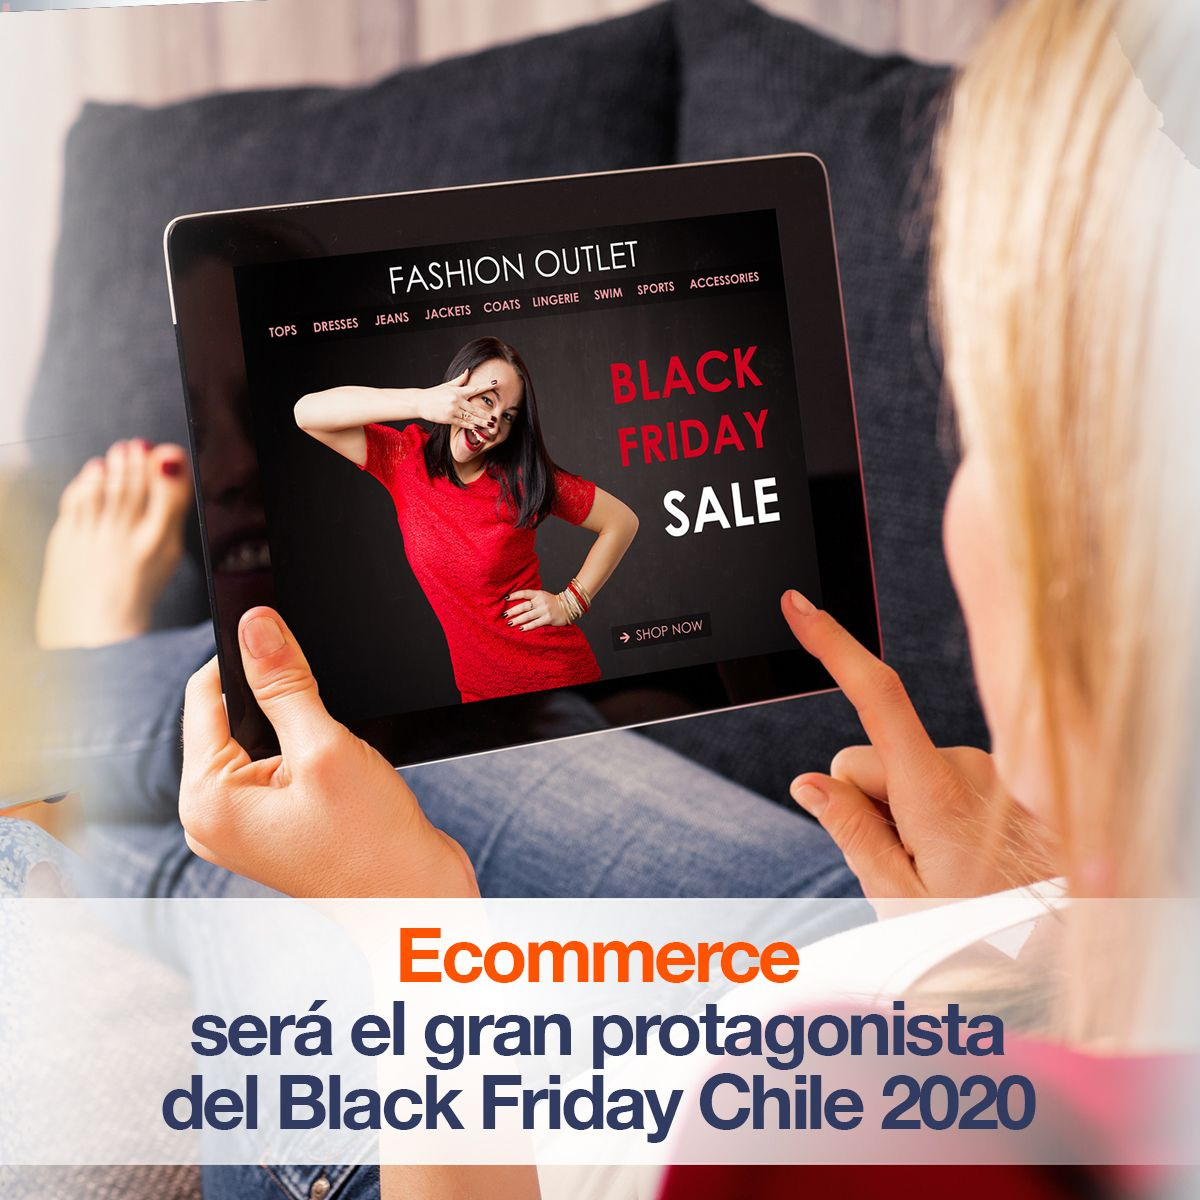 Ecommerce será el gran protagonista del Black Friday Chile 2020